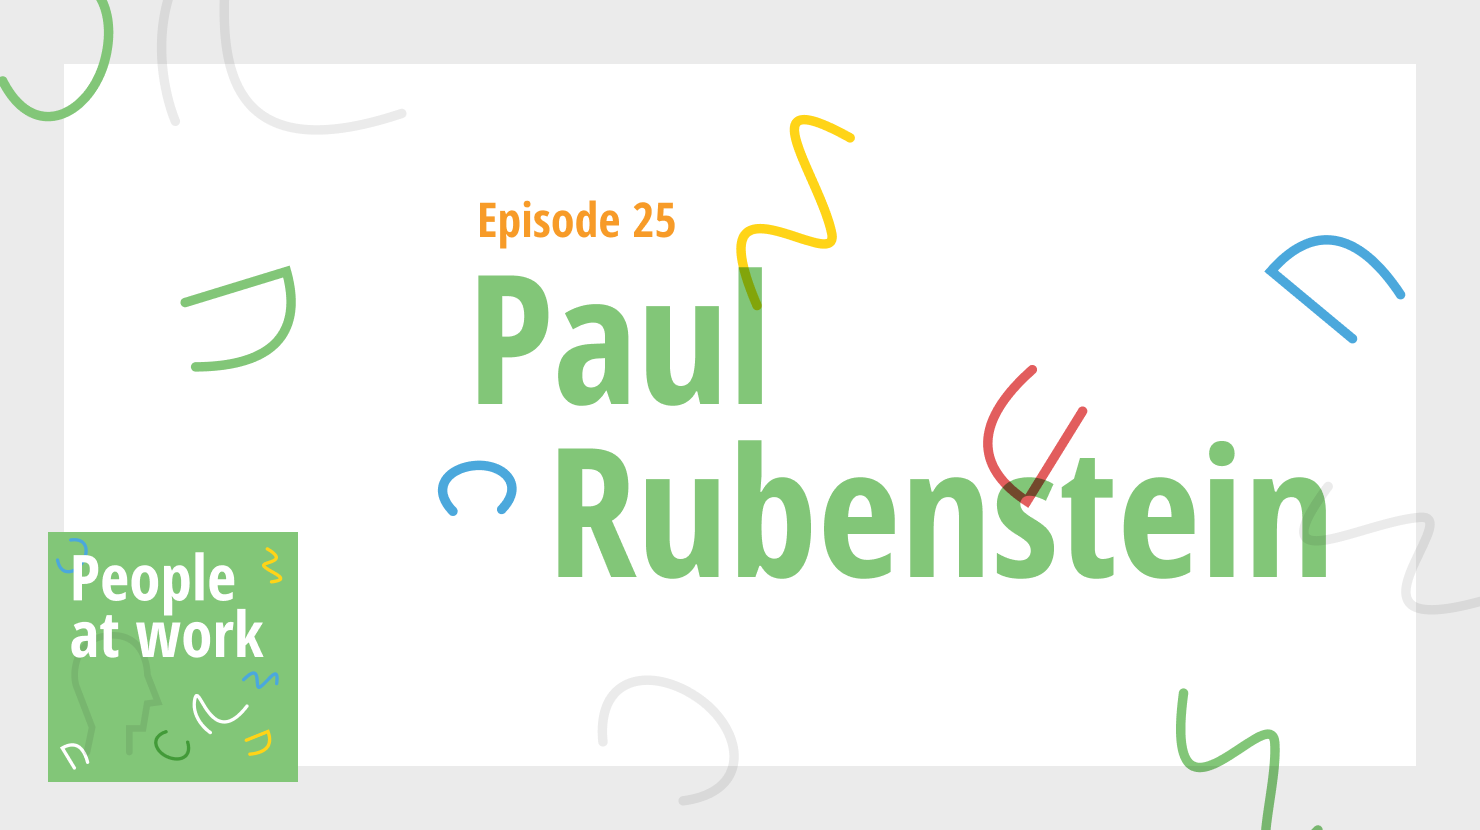 Paul Rubenstein on your company's